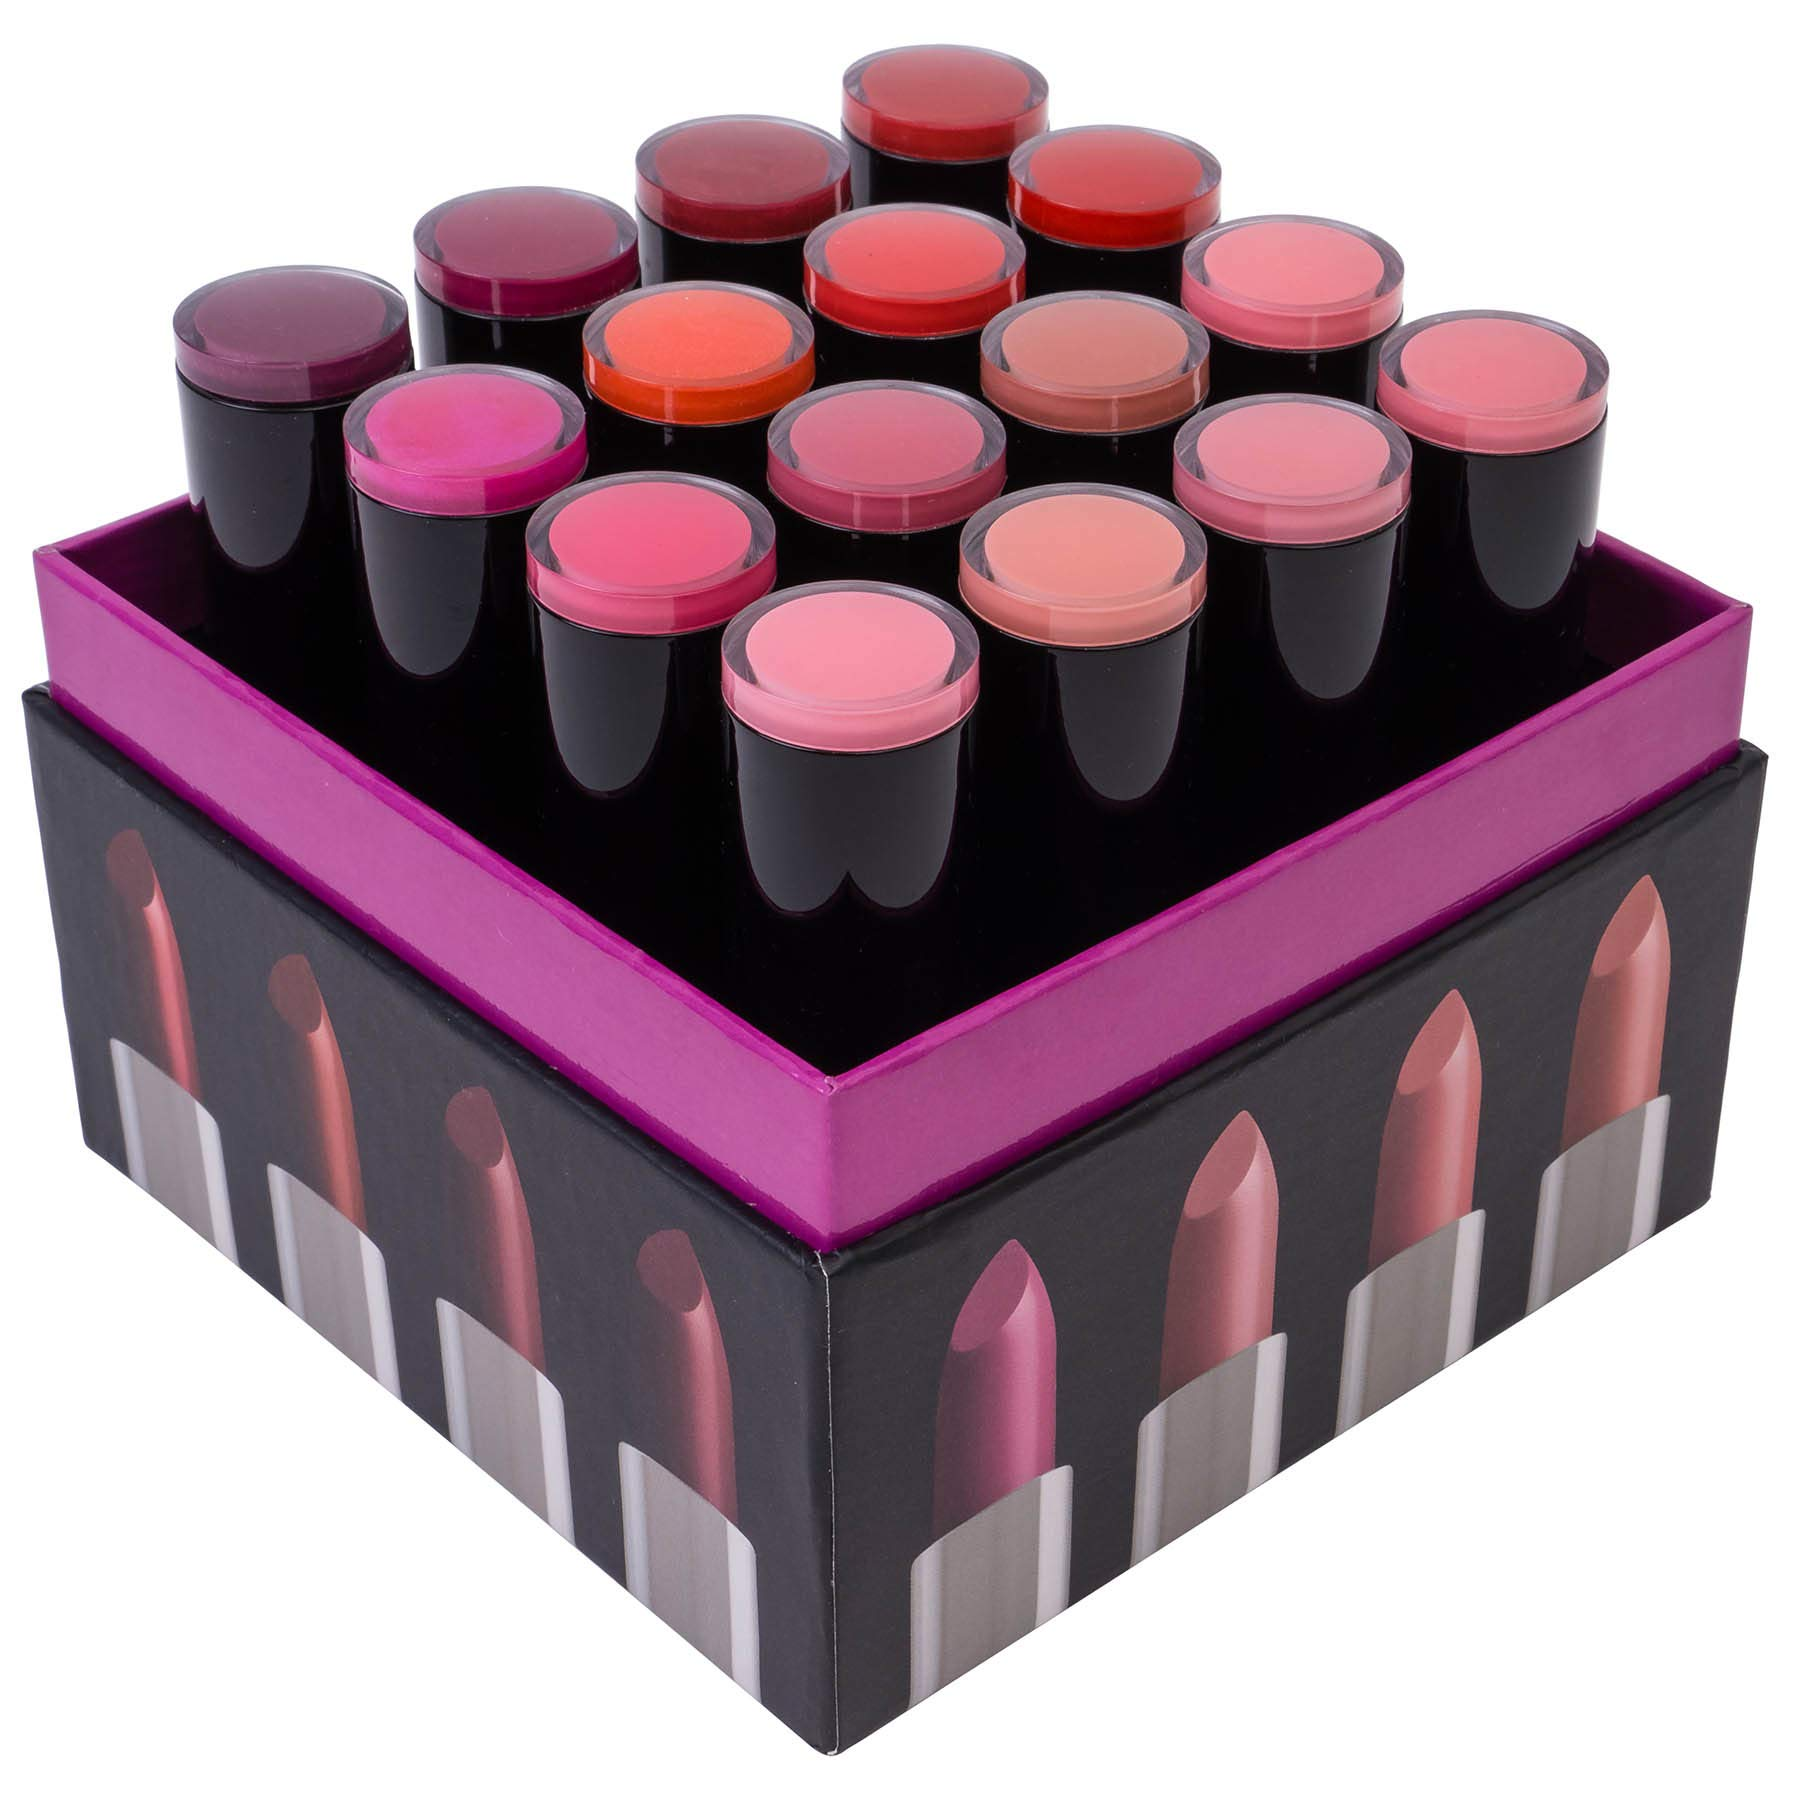 SHANY (Not So) Sweet Sixteen Creme Lipstick Set - Smooth, Highly Pigmented Lip Shades for All Day Wear - 16 Varying Colors by SHANY Cosmetics